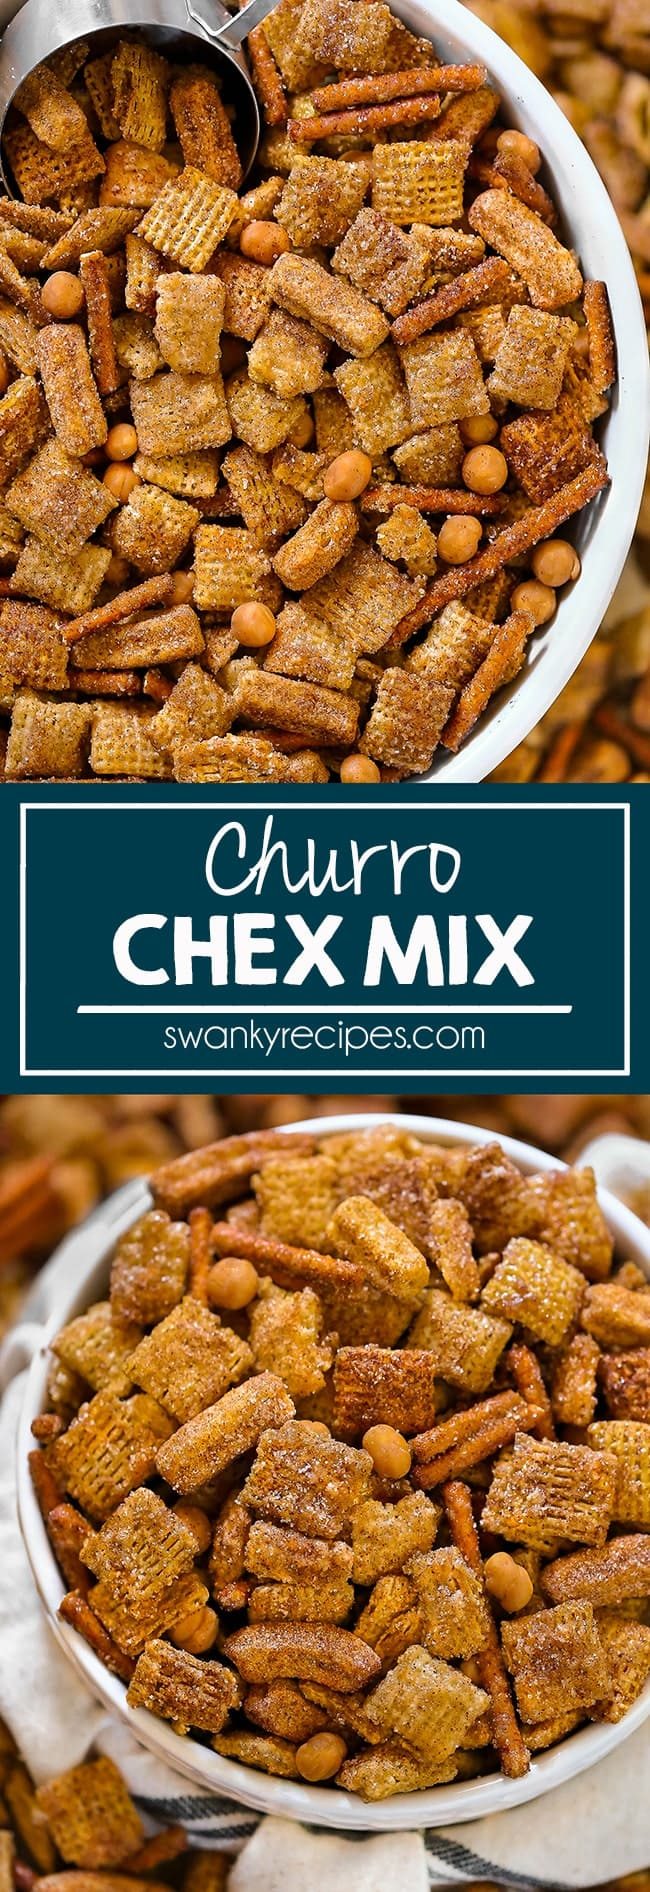 Churro Chex Mix with cinnamon sugar candy coated corn and rice cereal, pretzels, caramel candy, and churro cereal.